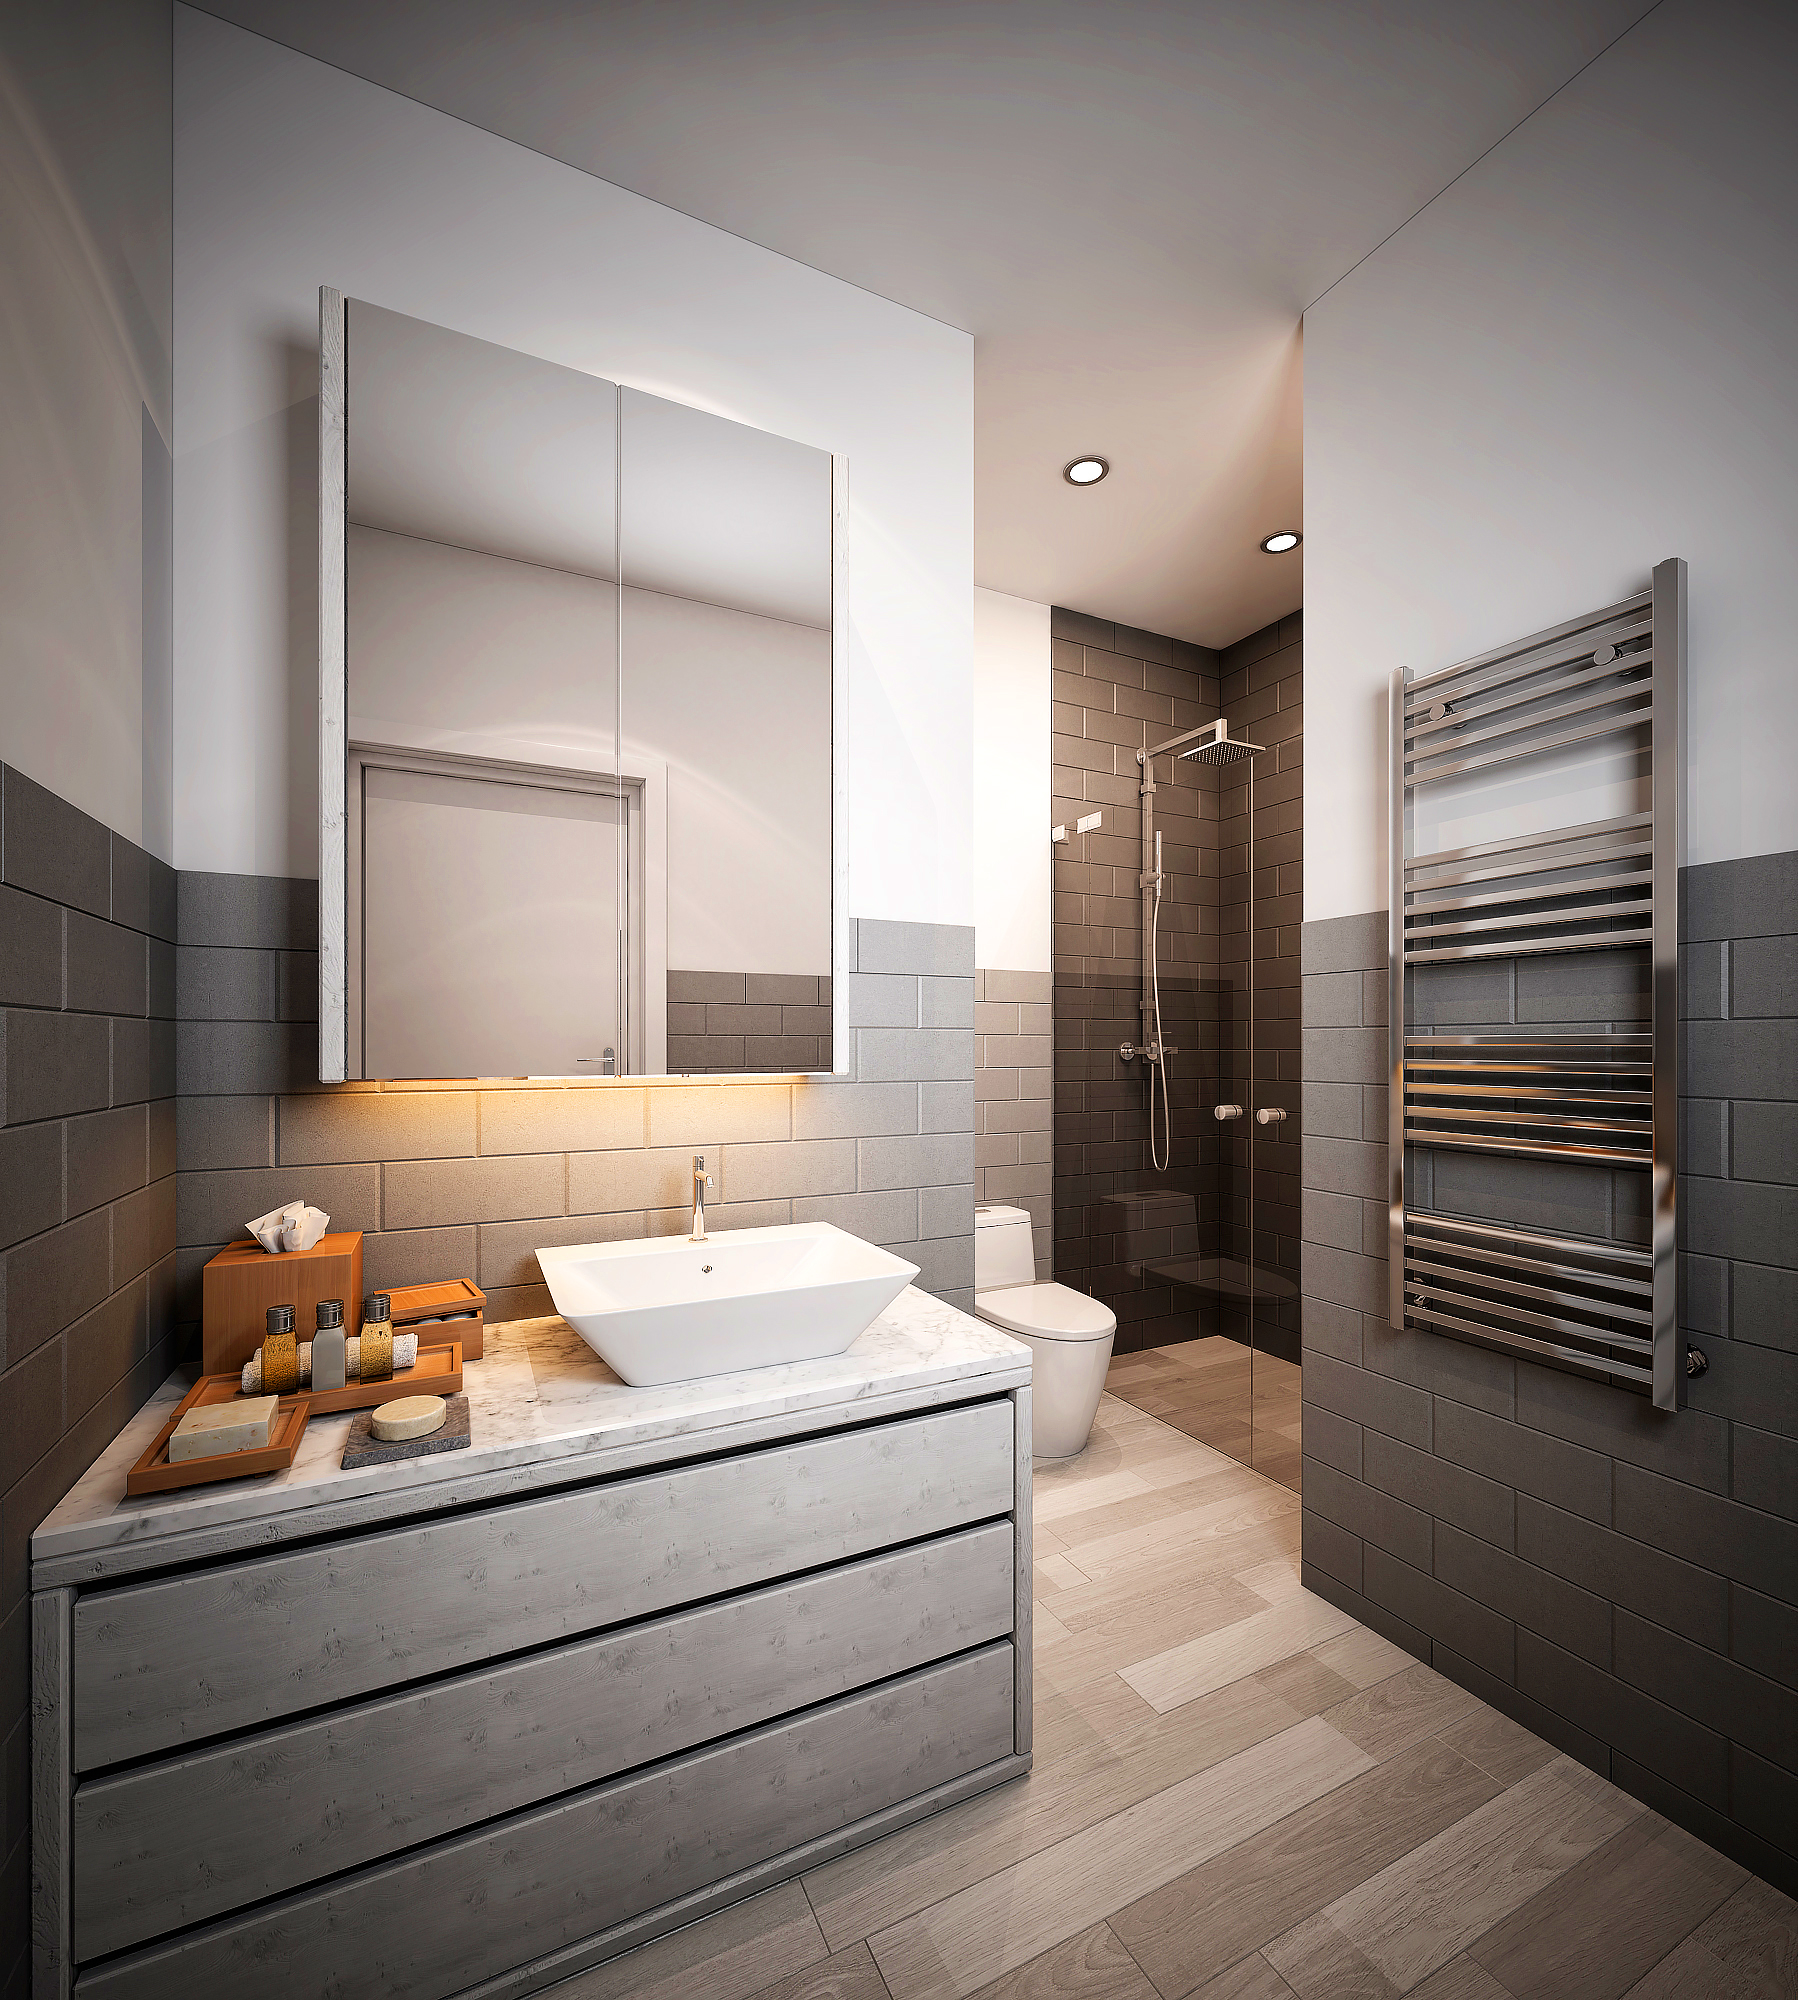 211-Shower Bedroom